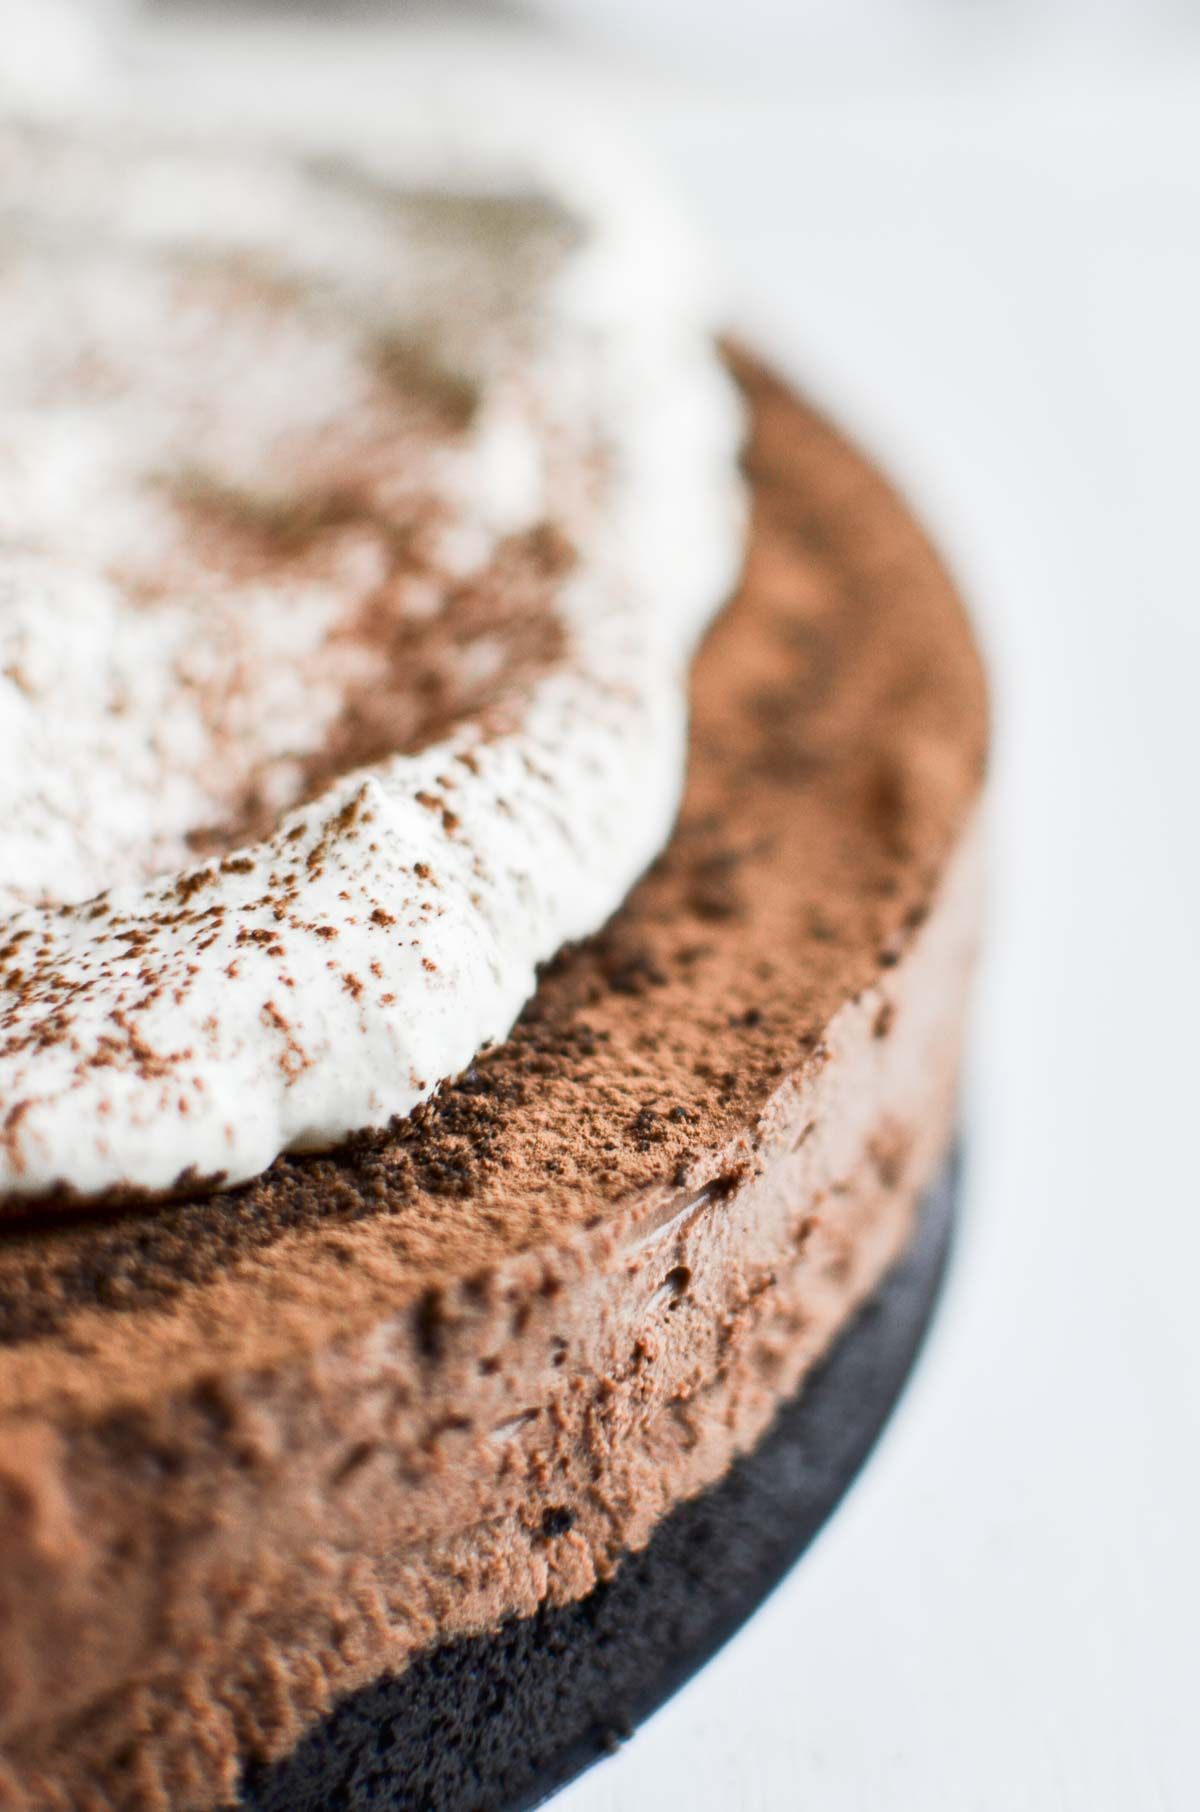 Almost no bake chocolate mousse pie with whipped cream